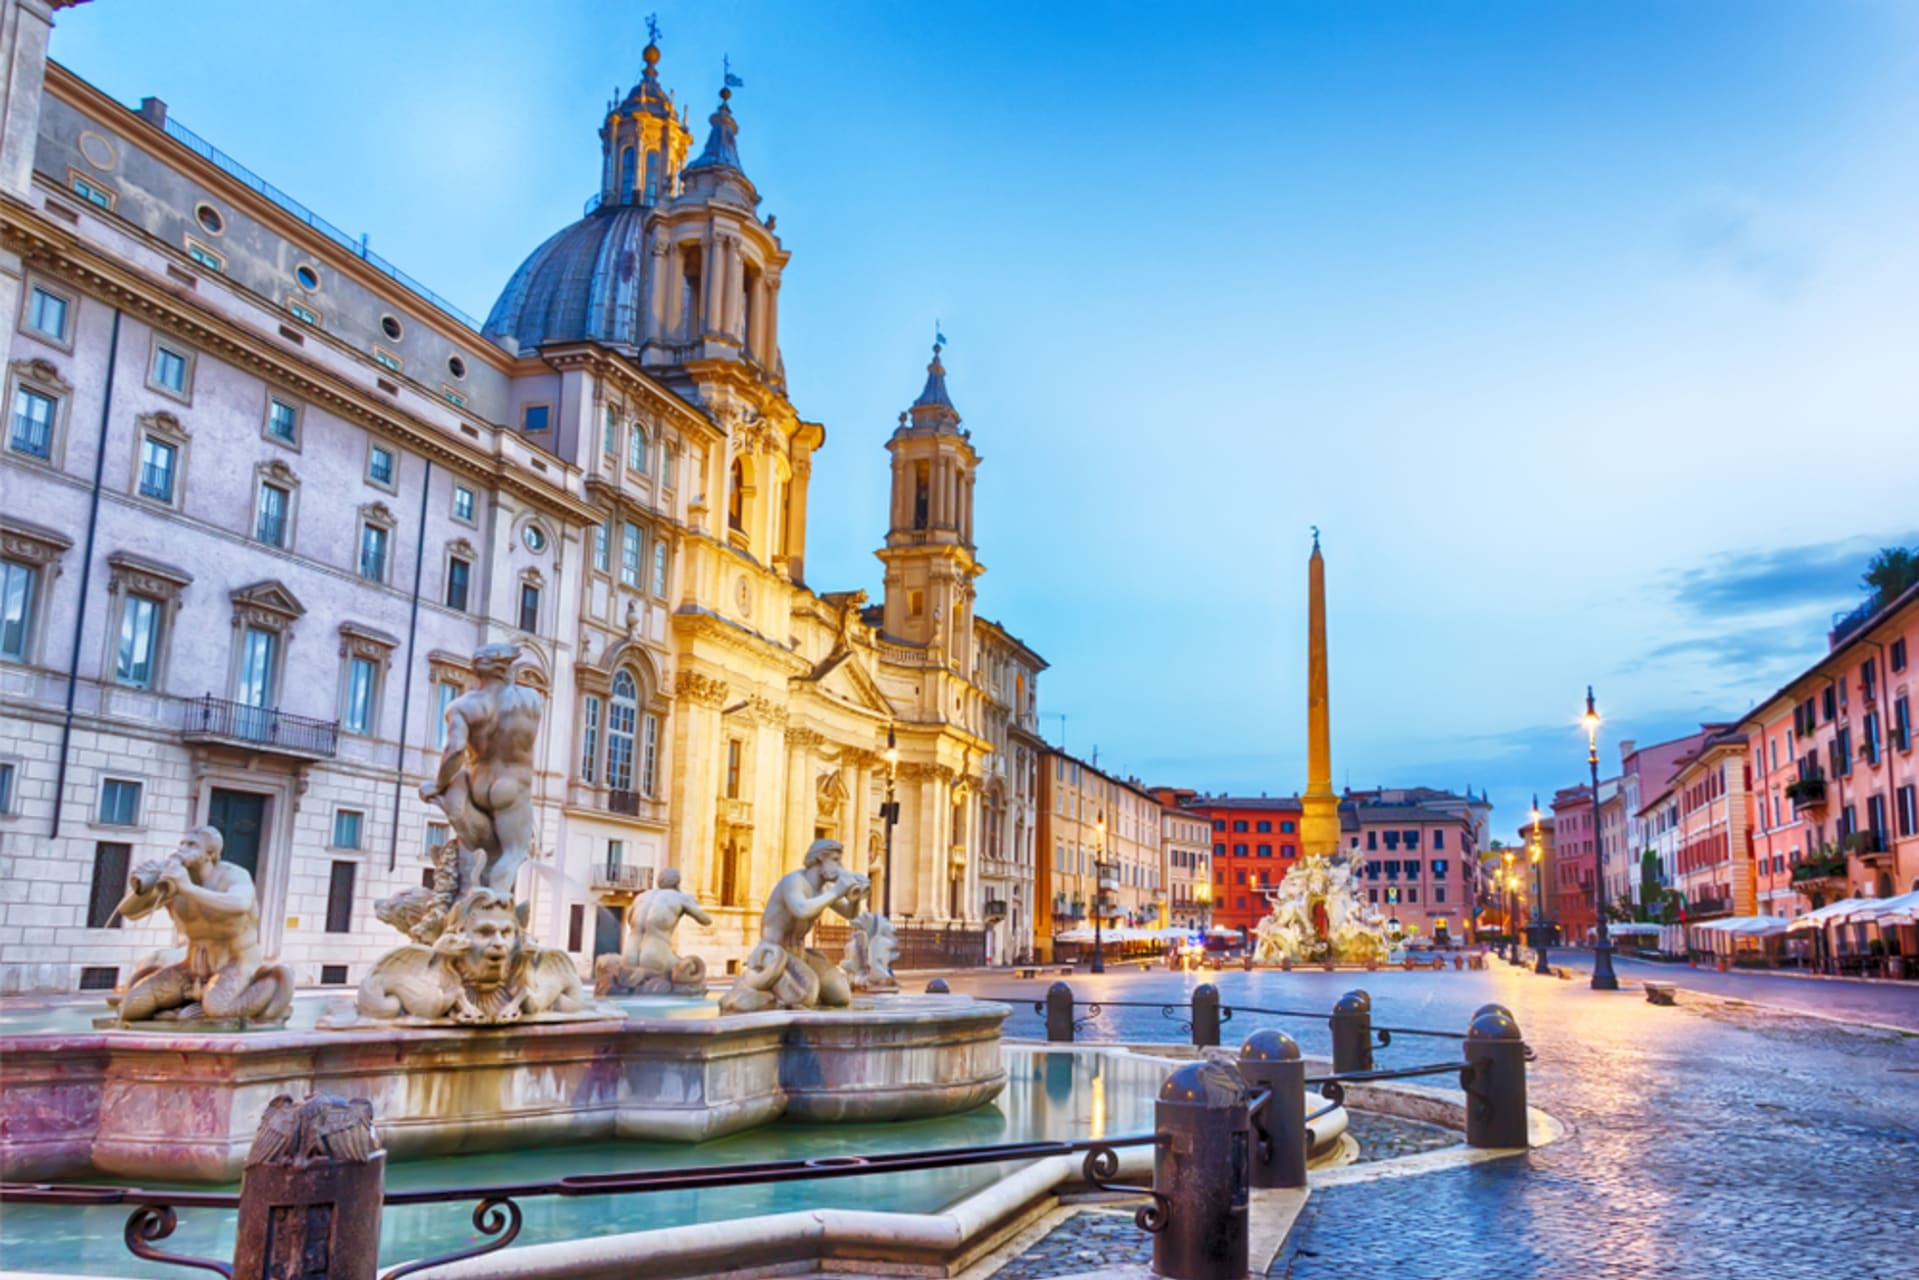 Rome - Navona Square and Caravaggio's painting